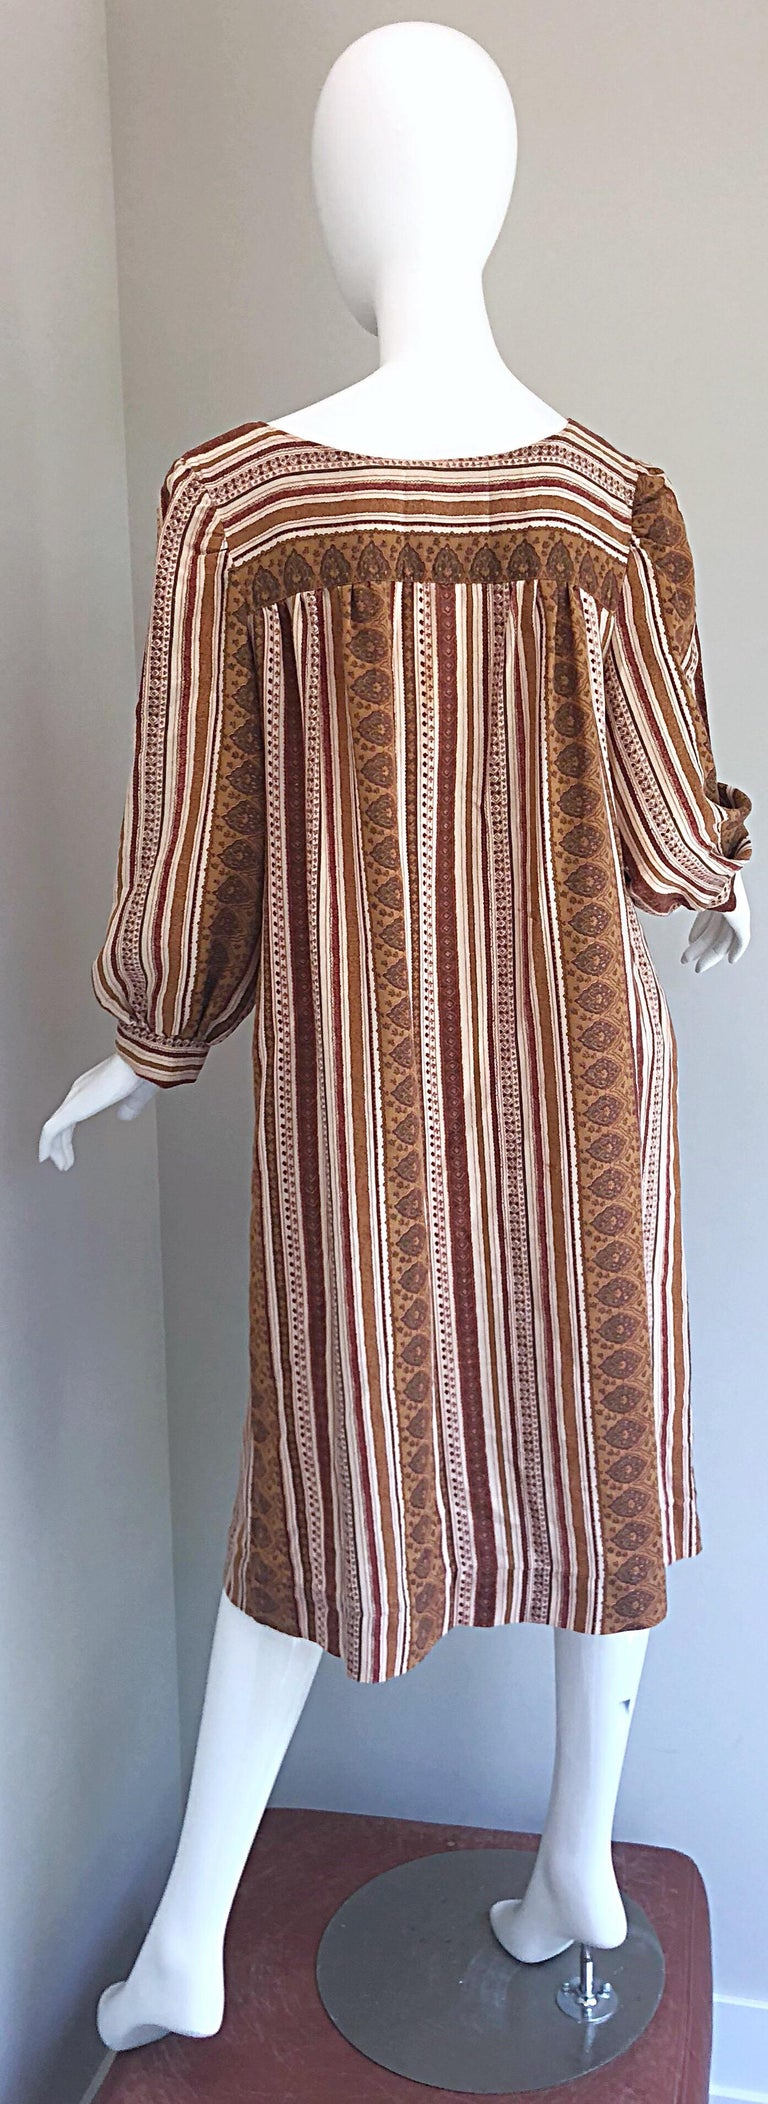 1970s Boho Chic Brown and Ivory Soft Cotton Paisley Print Vintage 70s Dress For Sale 7